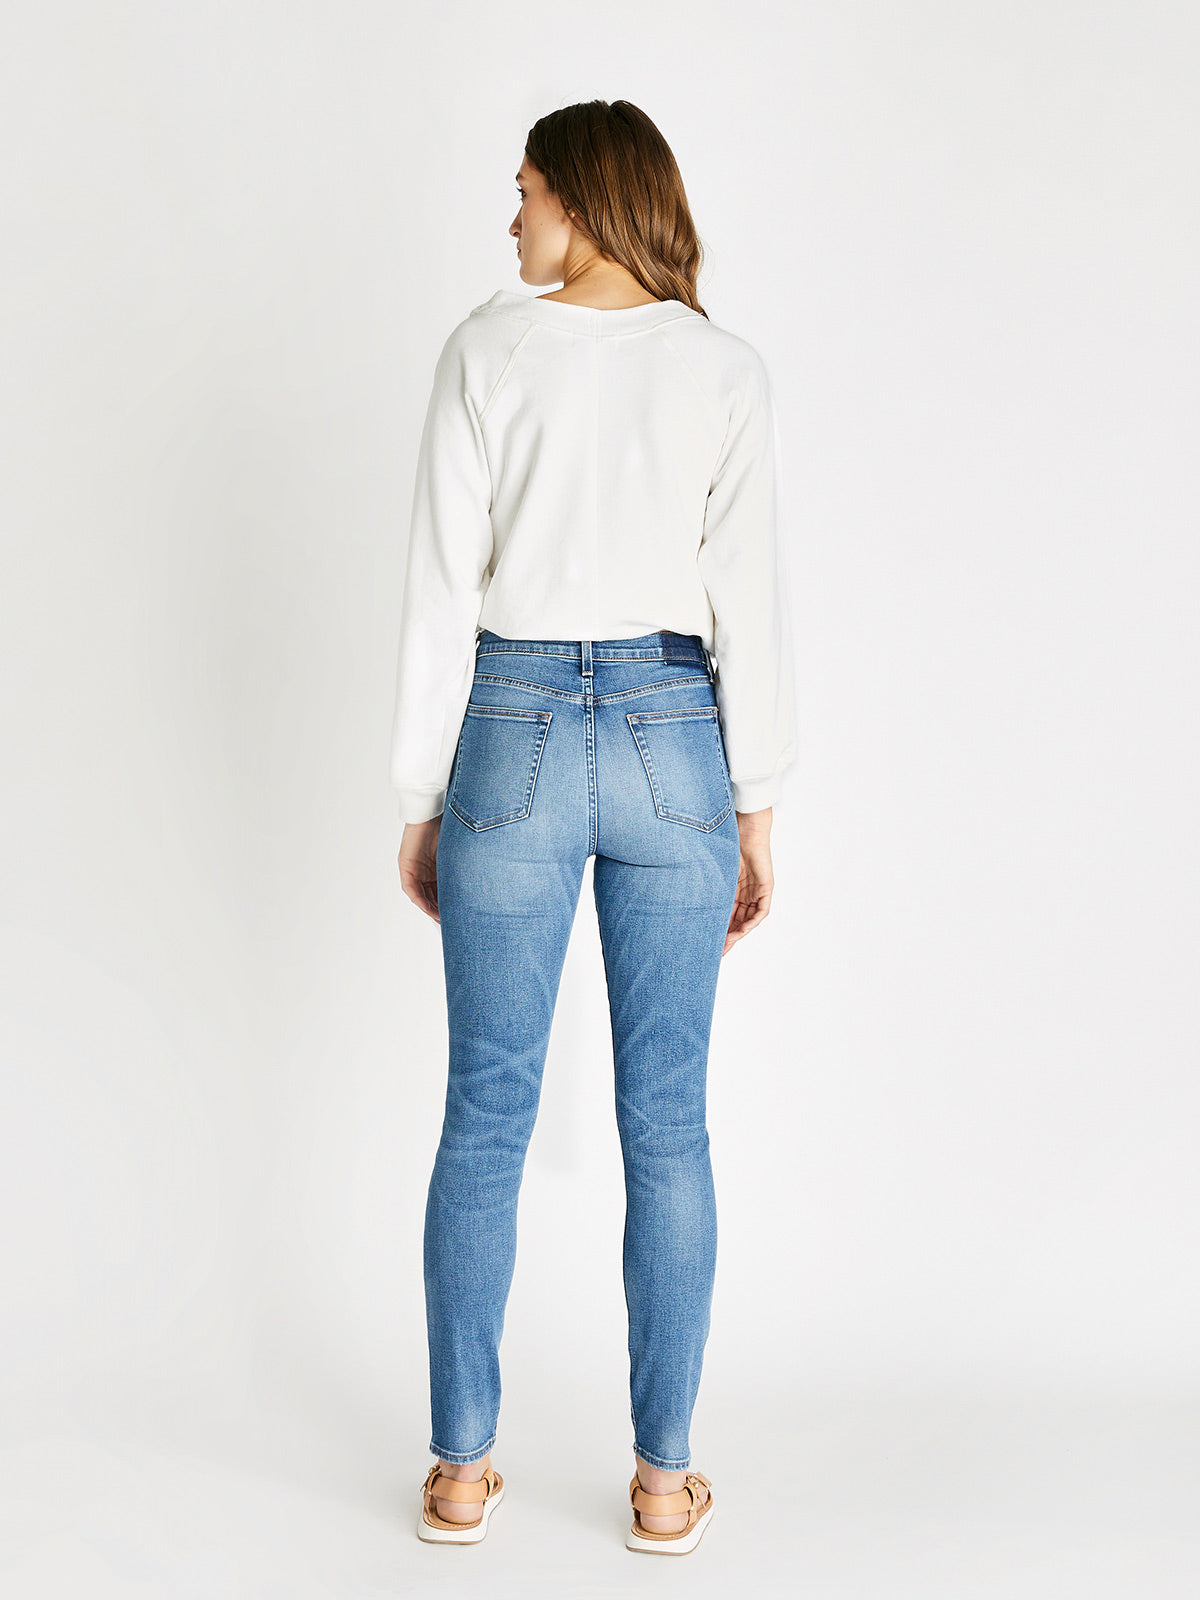 Giselle Skinny Ankle Jean - Emerald Pool